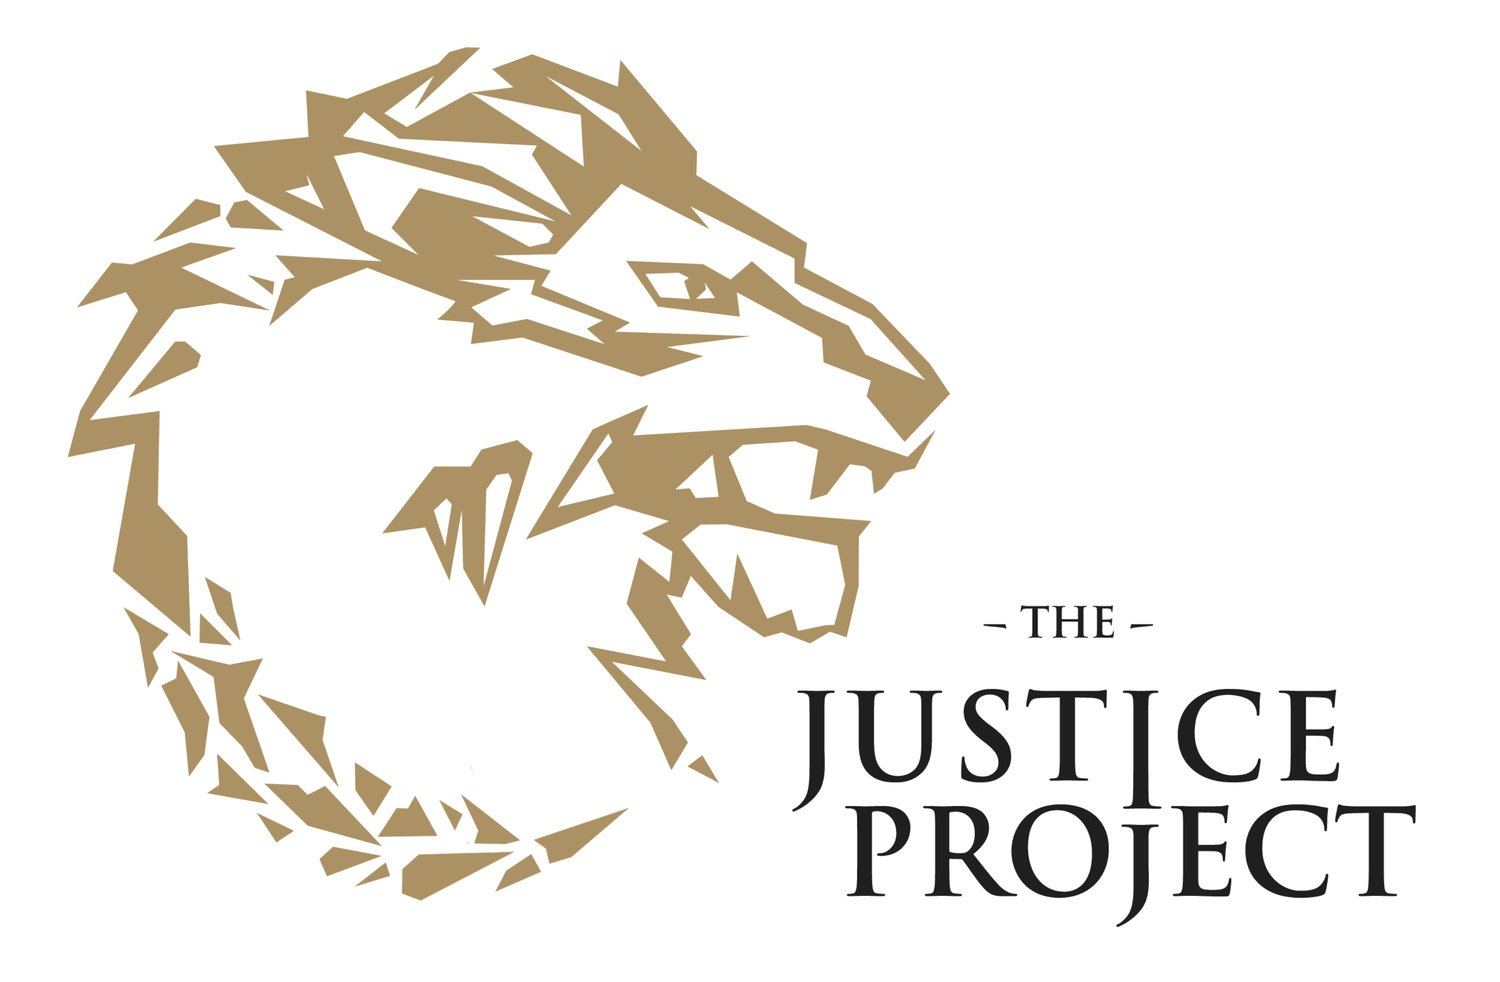 The Justice Project Deutschland